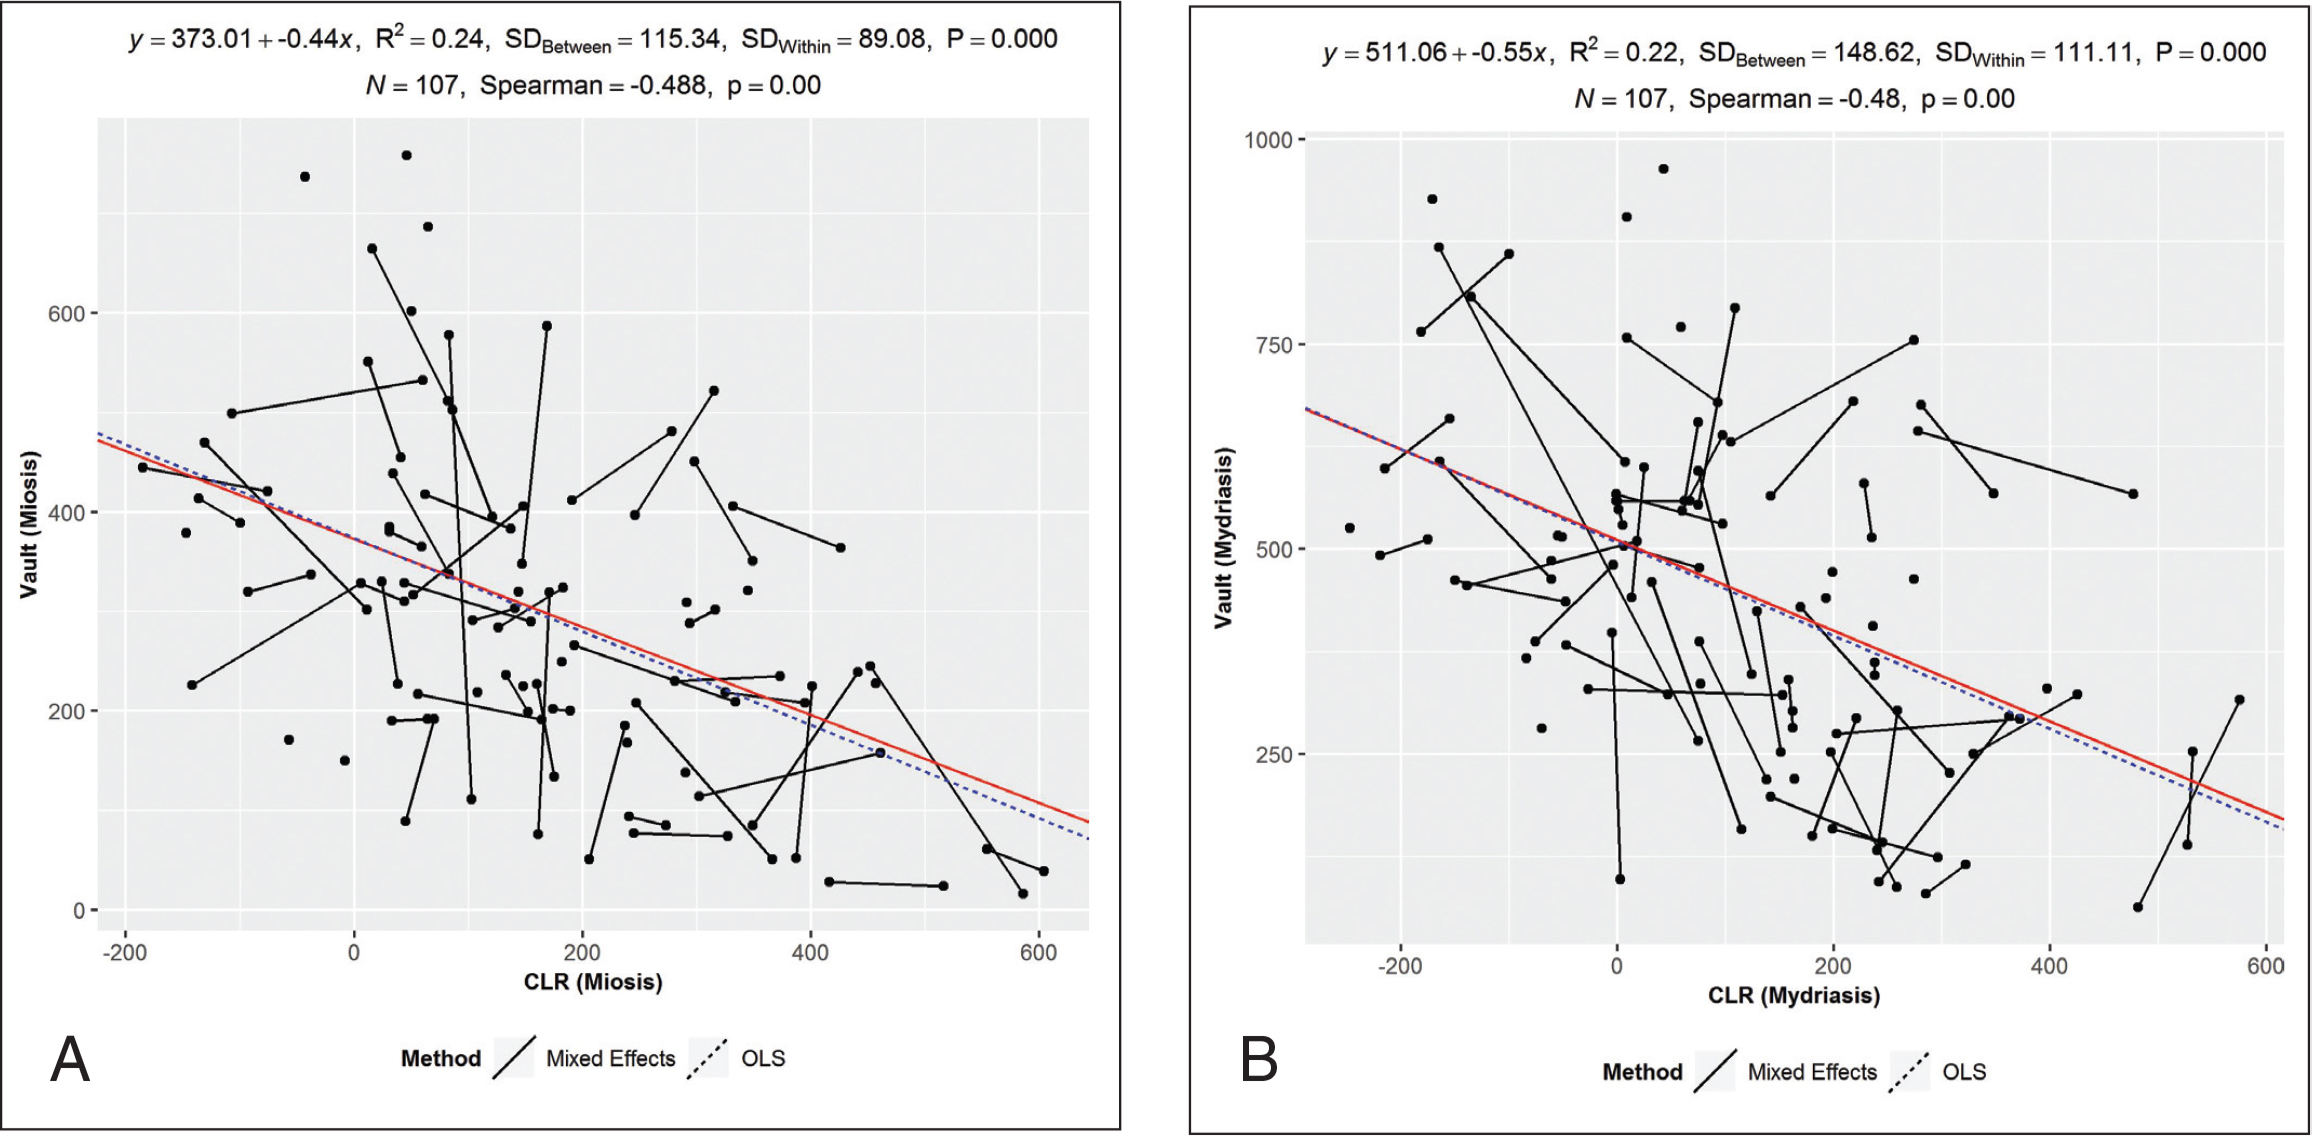 Correlation between vault and crystalline lens rise (CLR) in miosis and mydriasis.